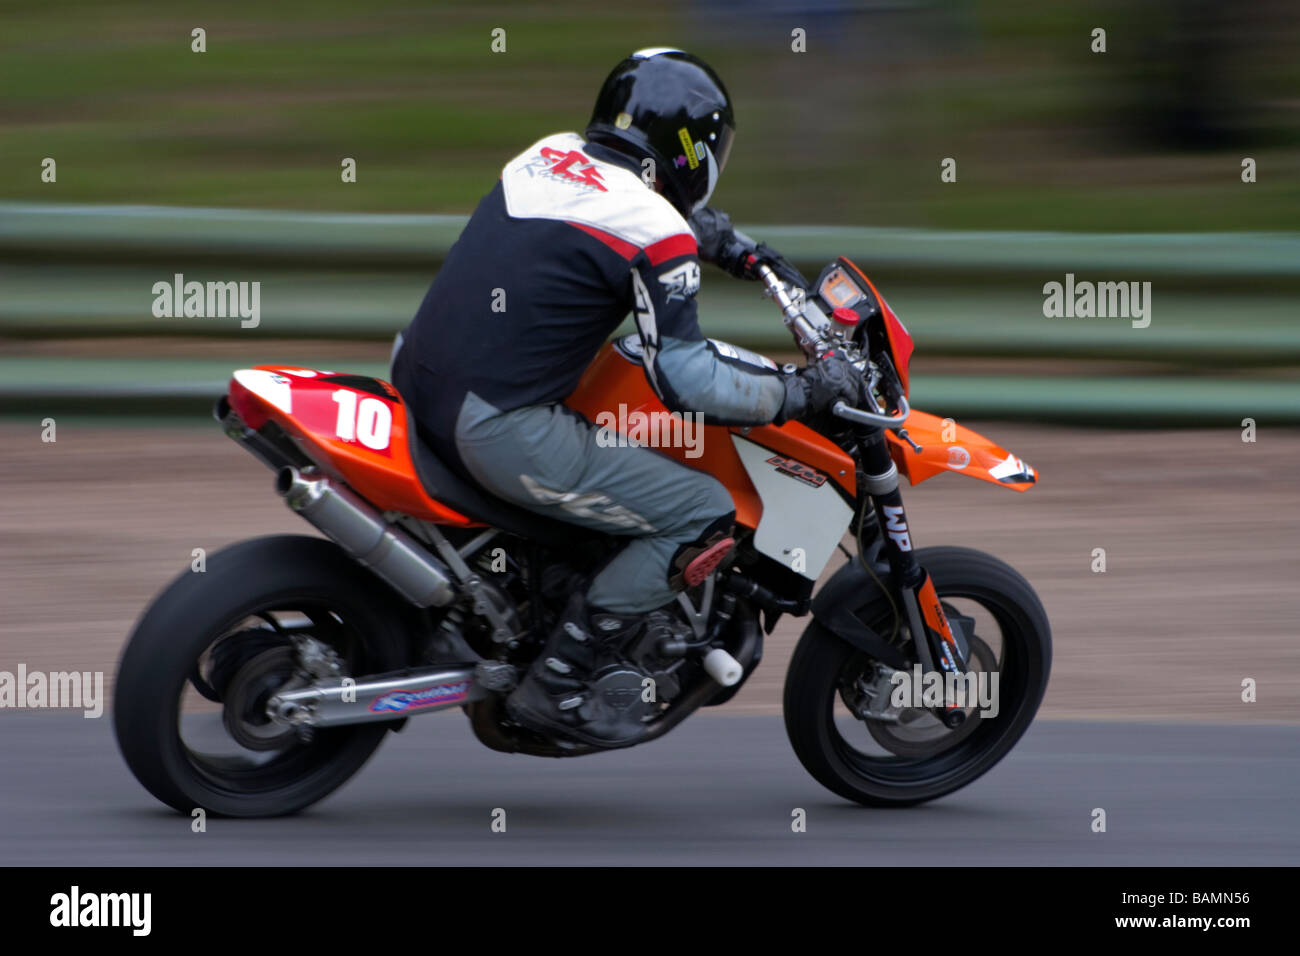 KTM 950cc Motorcycle - Stock Image